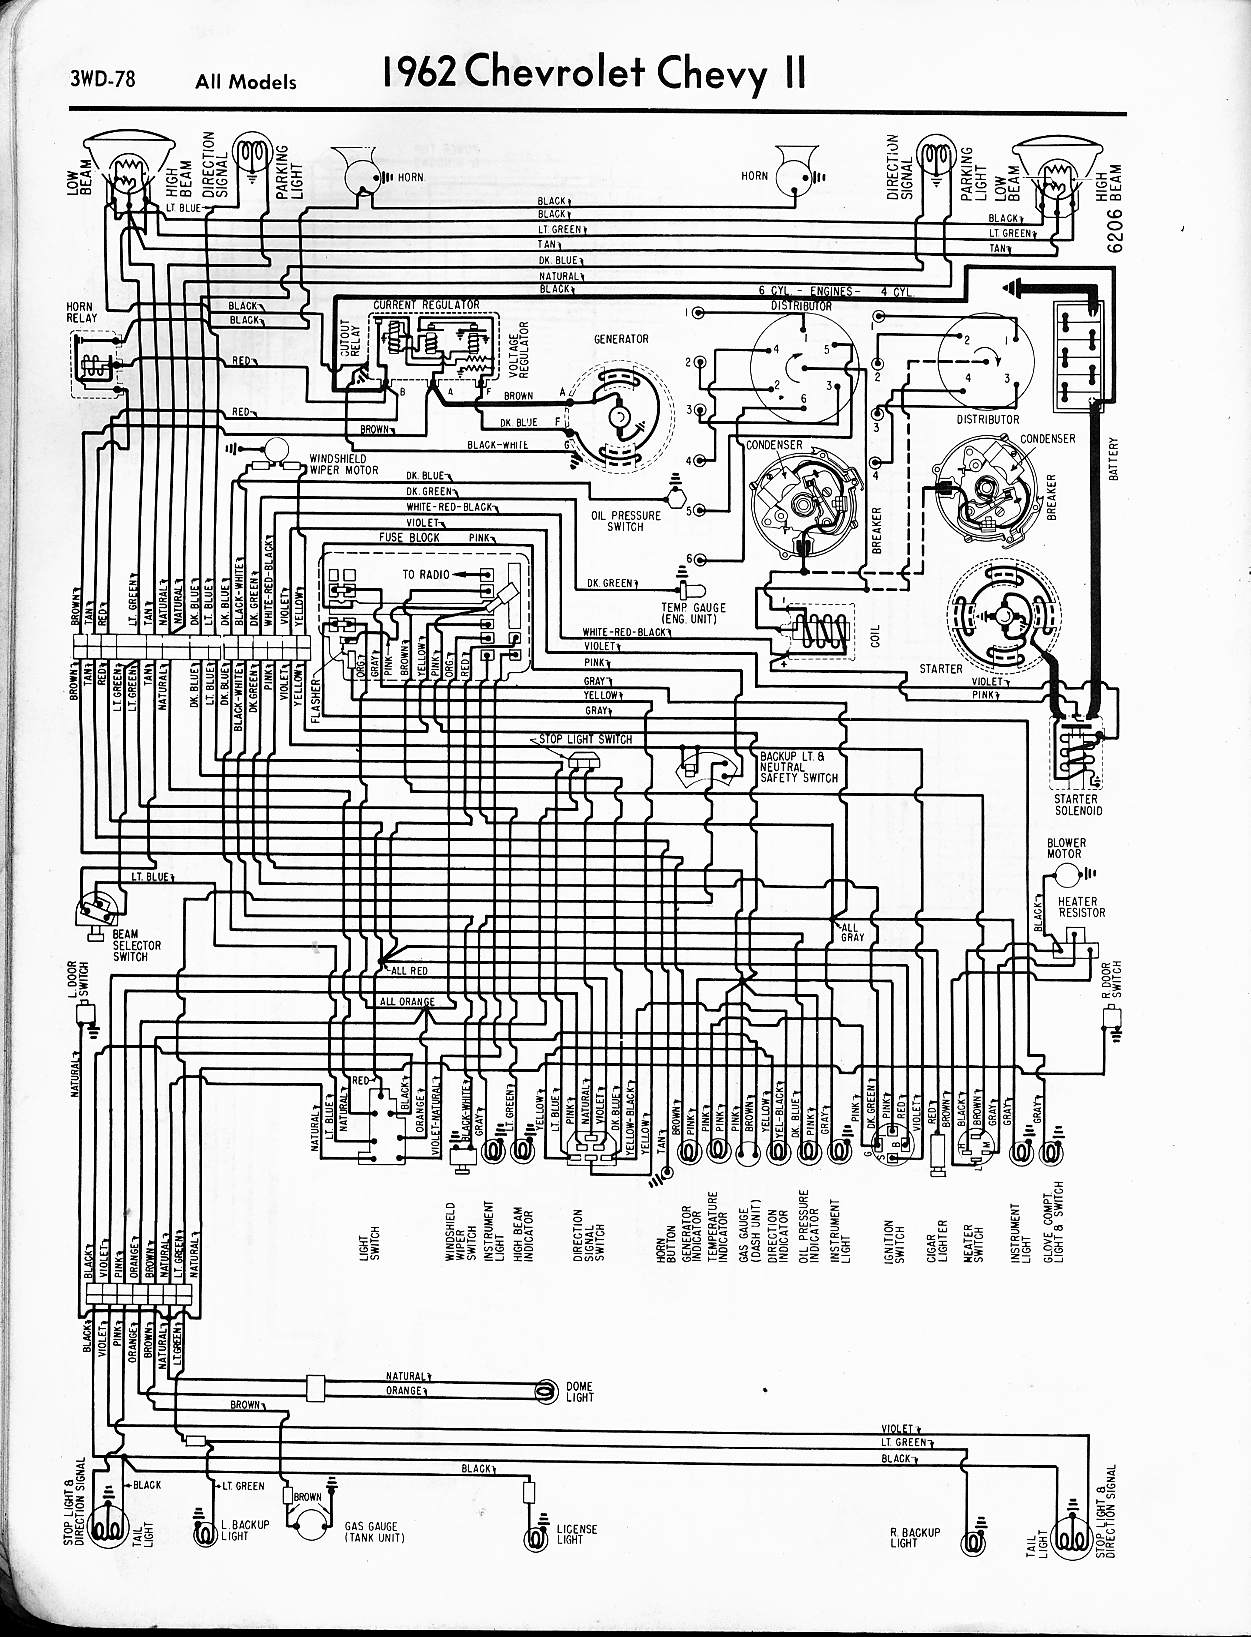 MWireChev62_3WD 078 1963 c10 pickup wiring diagram pdf chevy wiring diagrams \u2022 free 67 Chevy 2 Nova at honlapkeszites.co